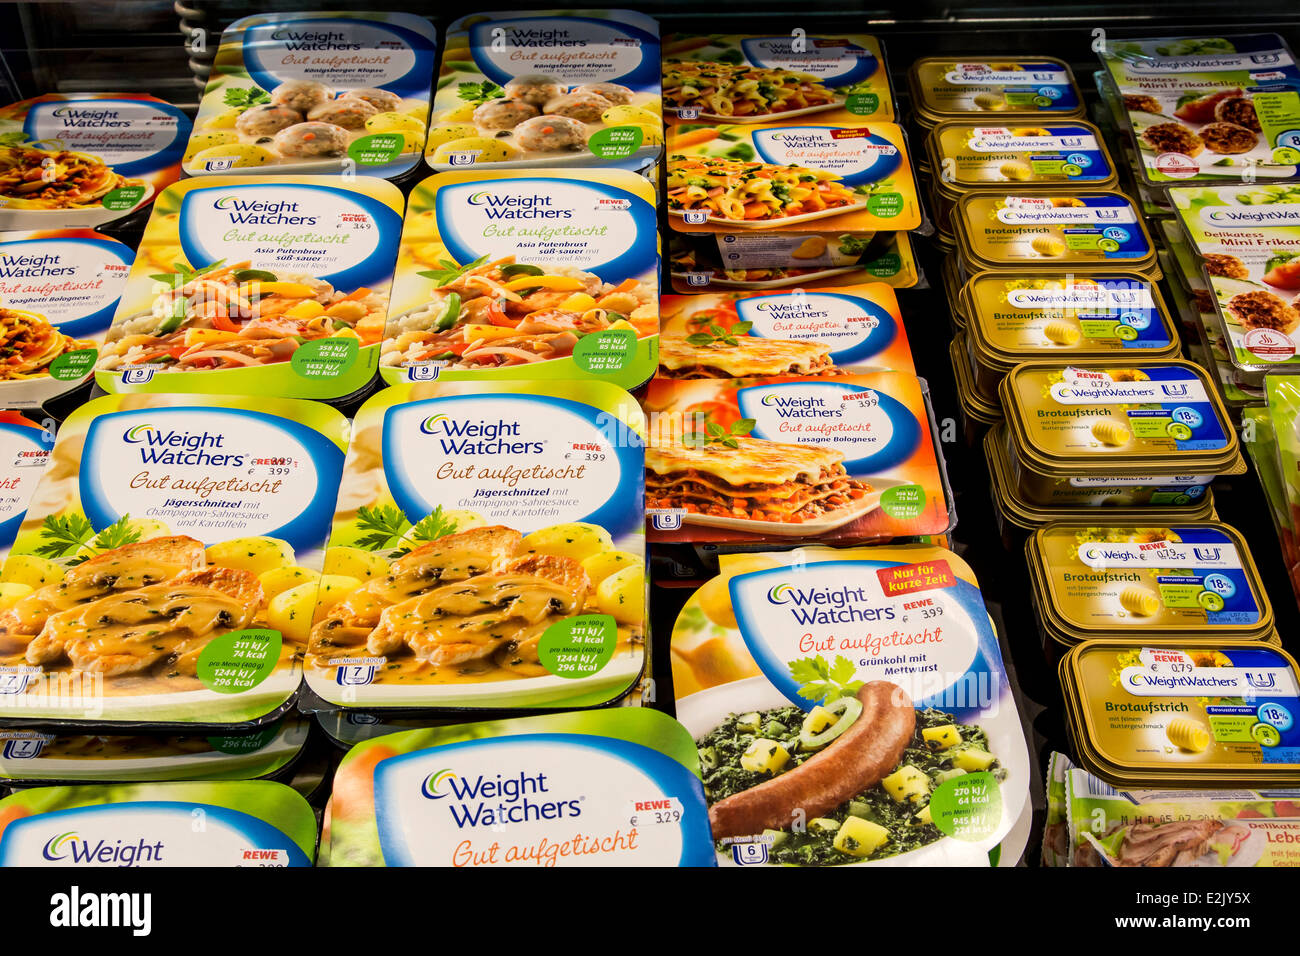 Shelf with food in a supermarket. Weight Watchers, ready to eat meals, - Stock Image